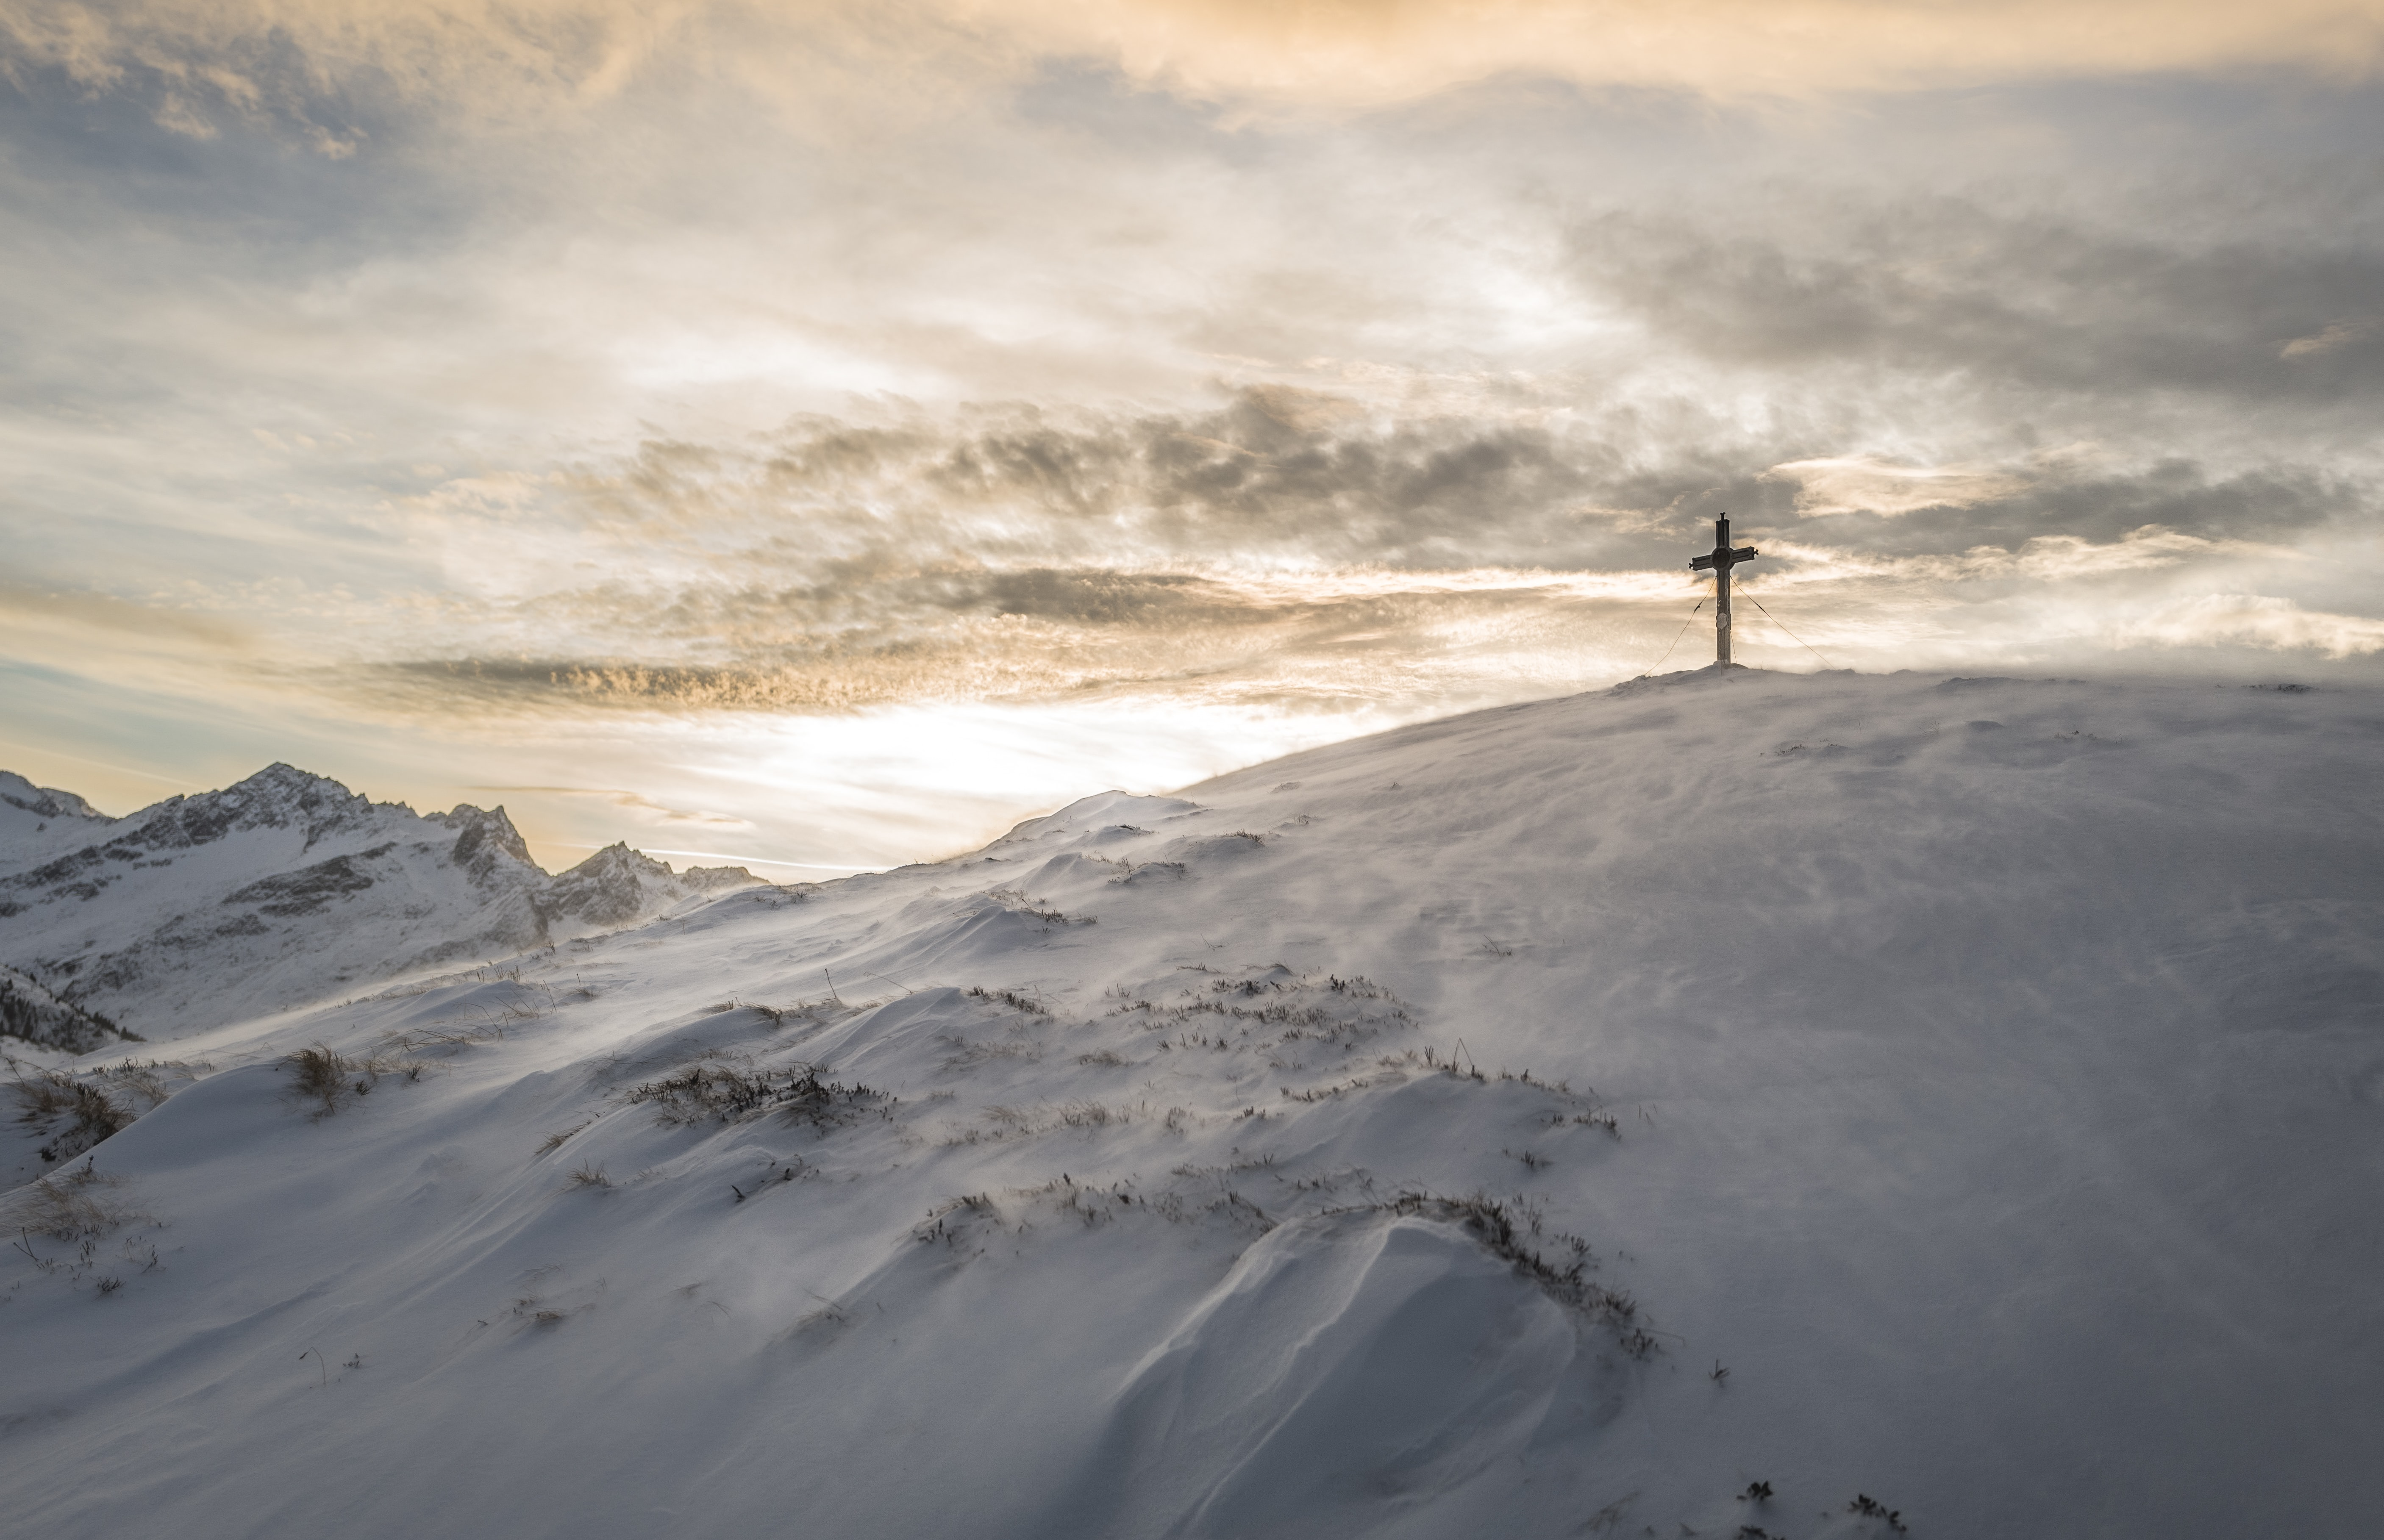 A cross at the top of a snowy mountain backlit by a setting or rising sun